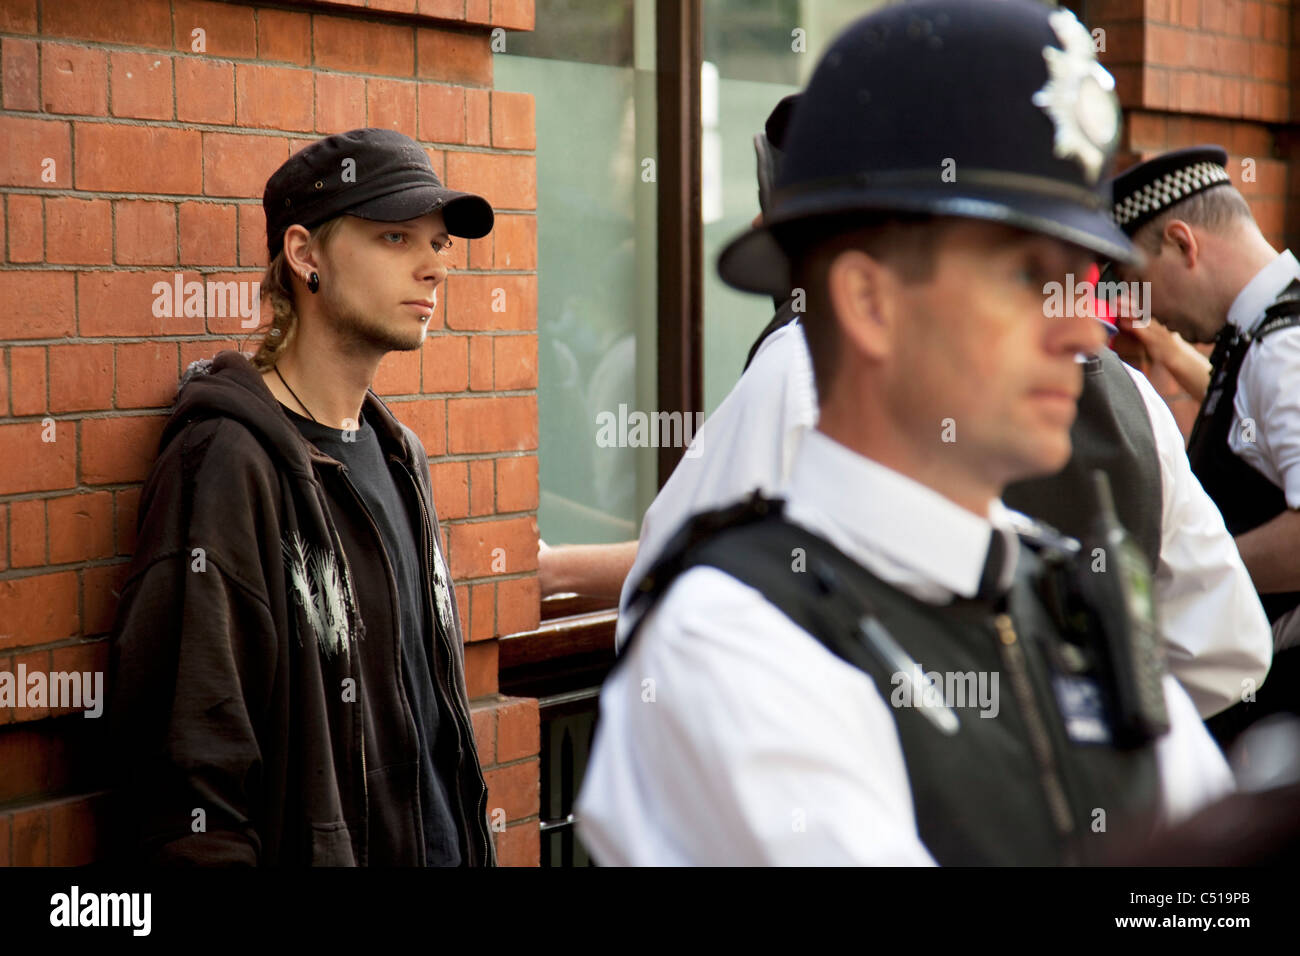 Police using their powers of stop and search during the general strike march in central London. UK. - Stock Image